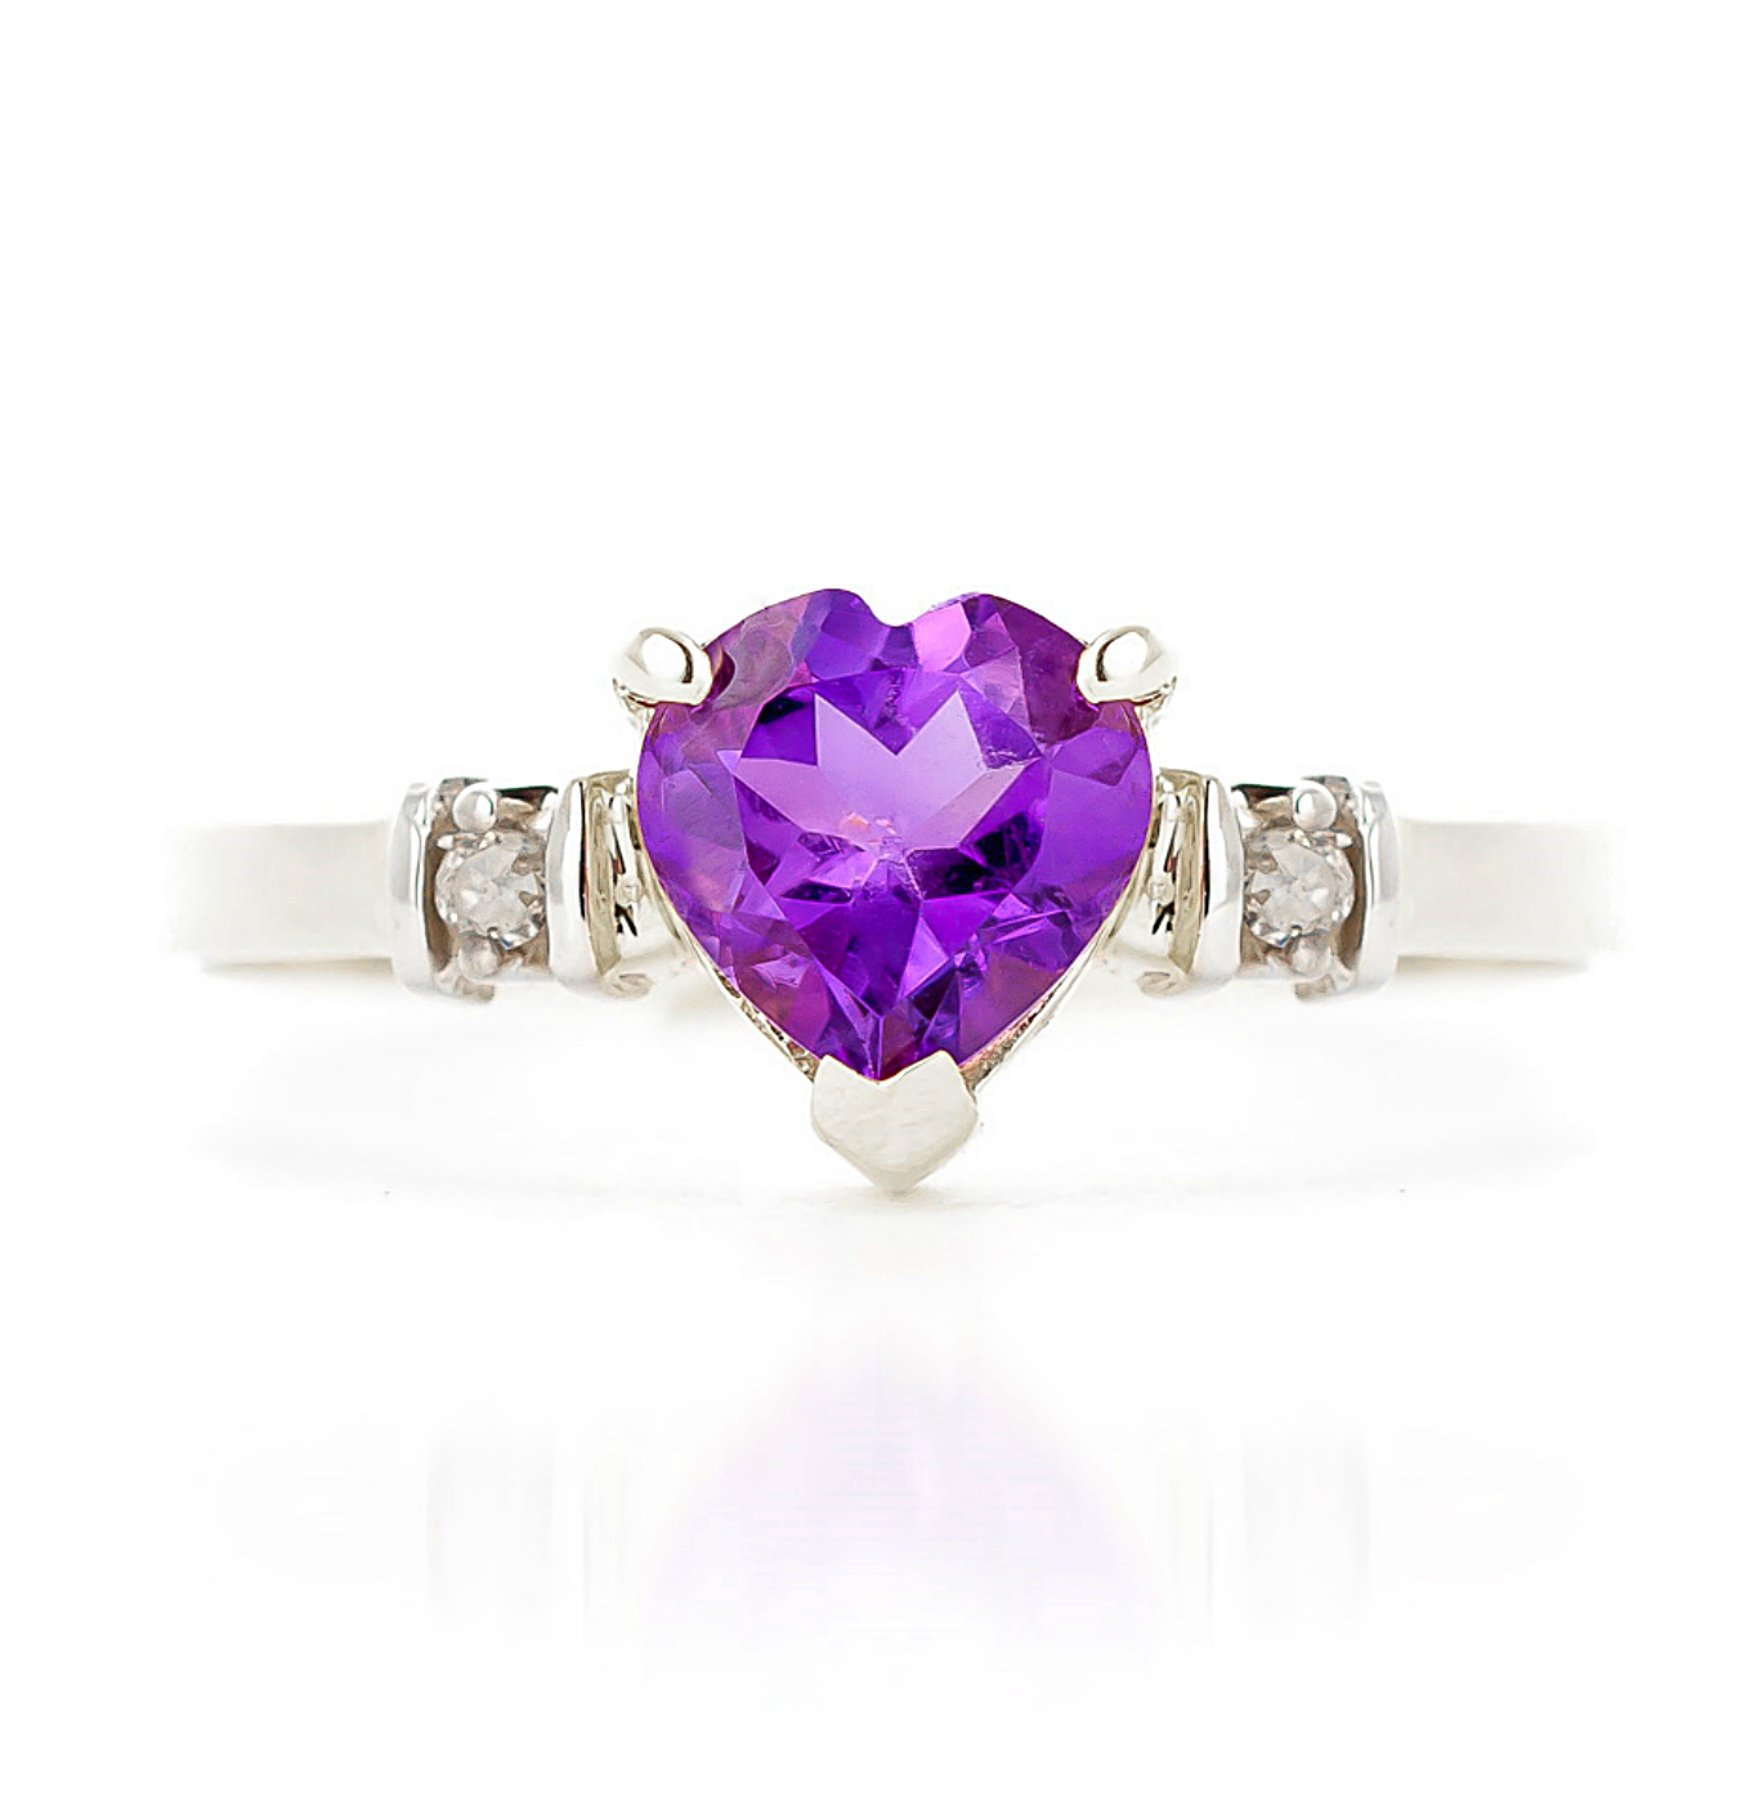 14k White Gold Ring with Genuine Diamonds and Natural Heart-shaped Purple Amethyst - Size 11 by Galaxy Gold (Image #4)